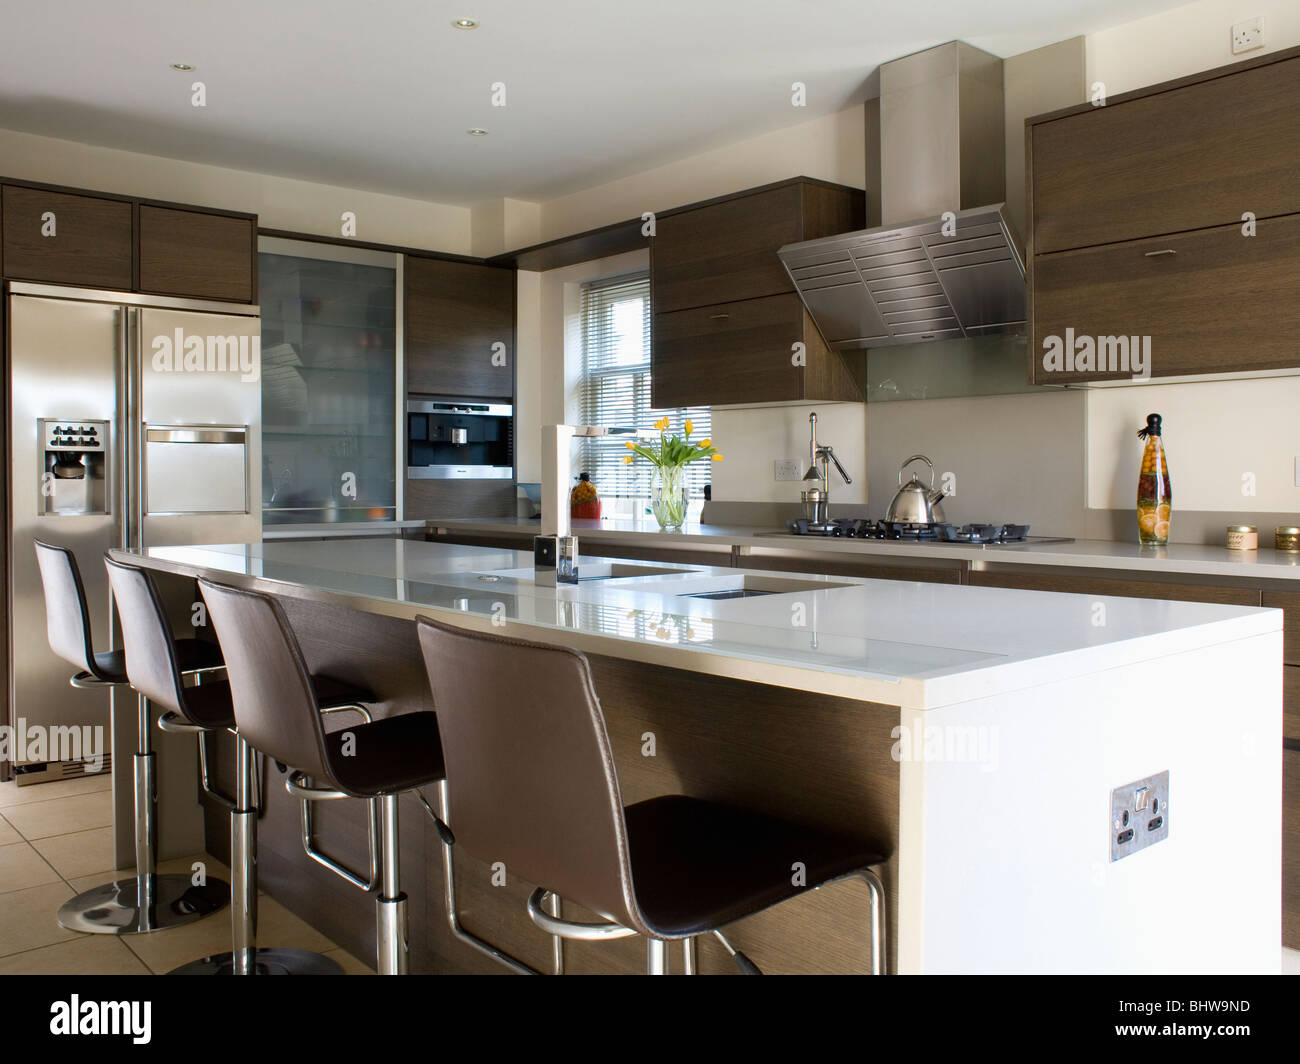 Black Stools At Breakfast Bar On White Island Unit In Modern Kitchen Stock Photo Alamy